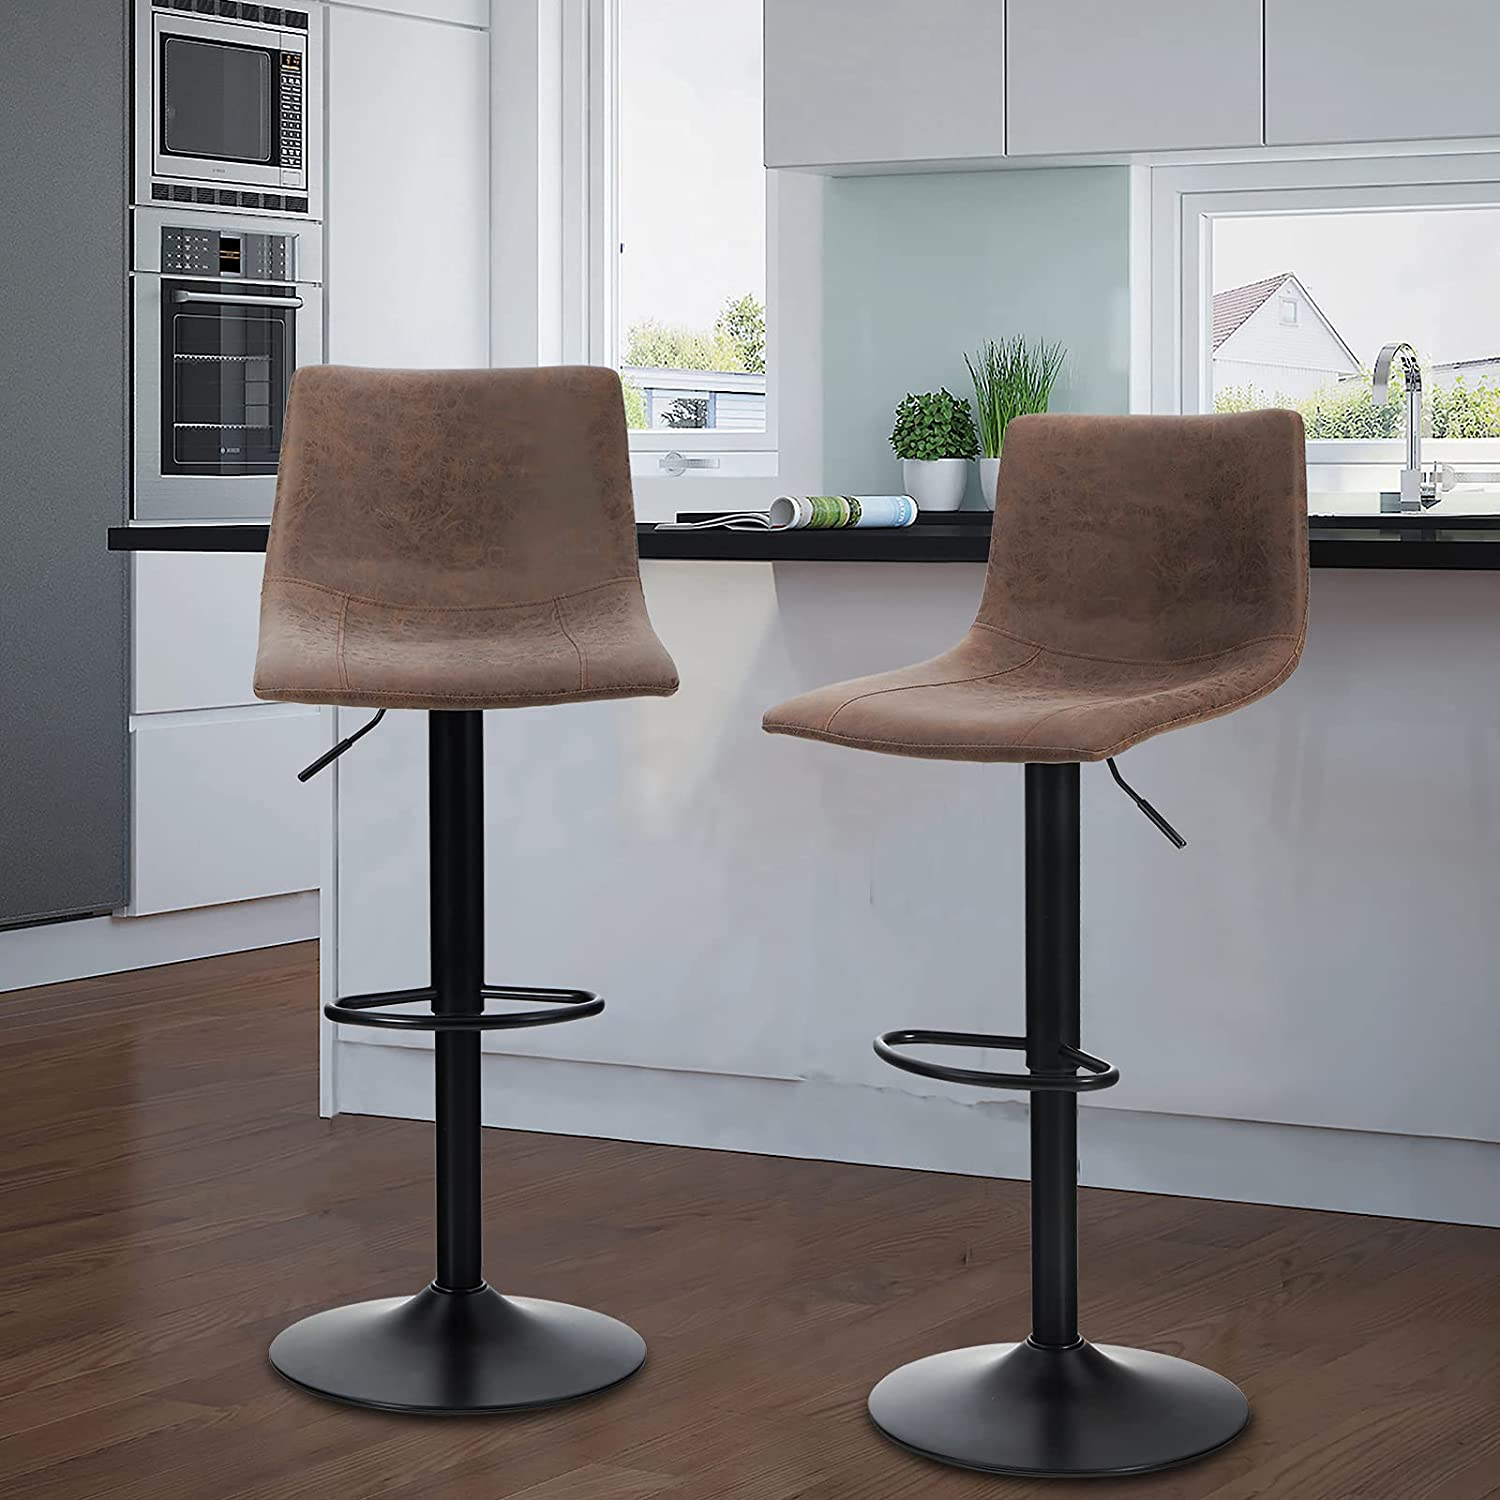 Maison Swivel Bar Stools Set of 9 for Kitchen Counter Adjustable Counter  Height Bar Chairs with Back Tall Barstools Faux Leather Kitchen Island ...